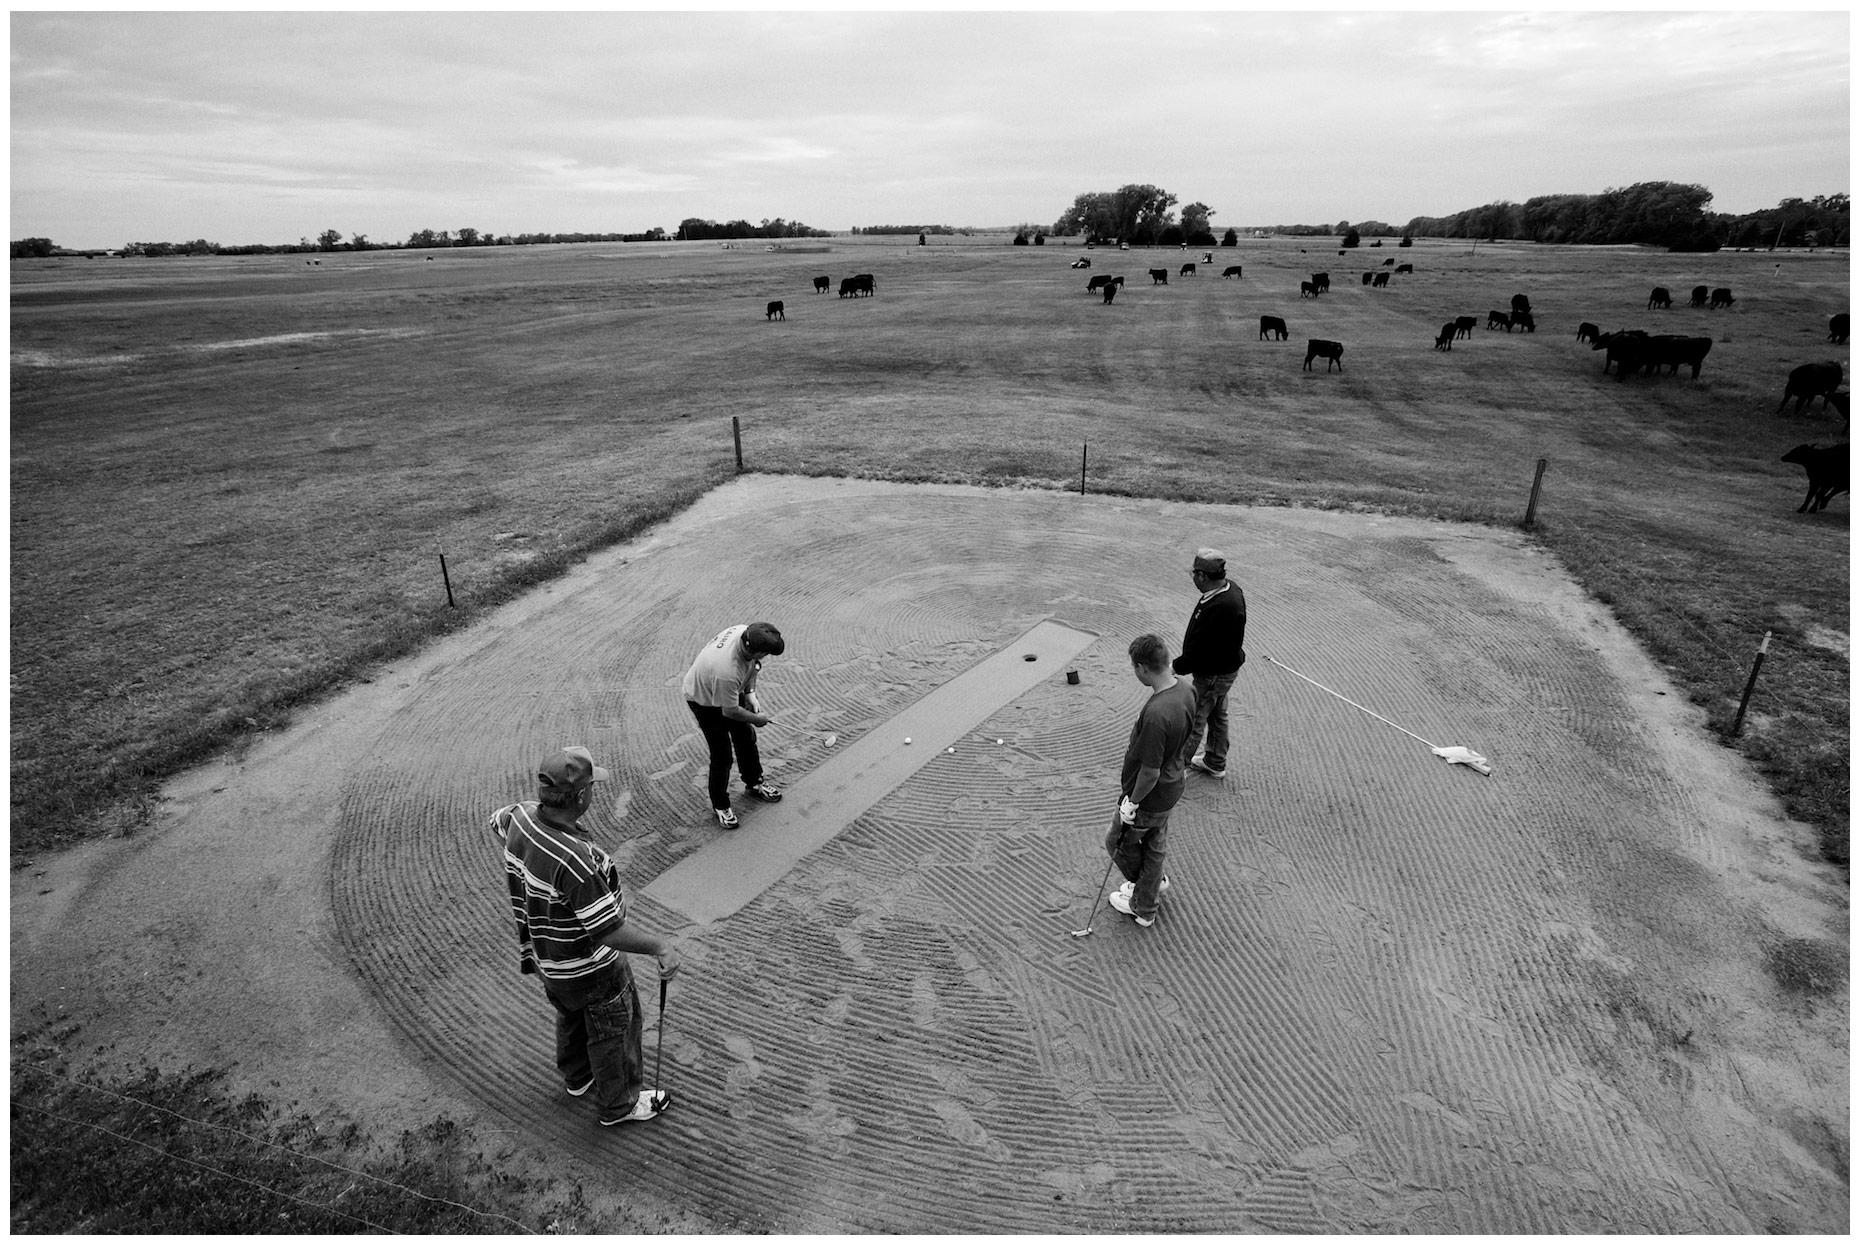 Dannebrog Country Club in Dannebrog, Nebraska. One of the last remaining sand green courses left in the United States.